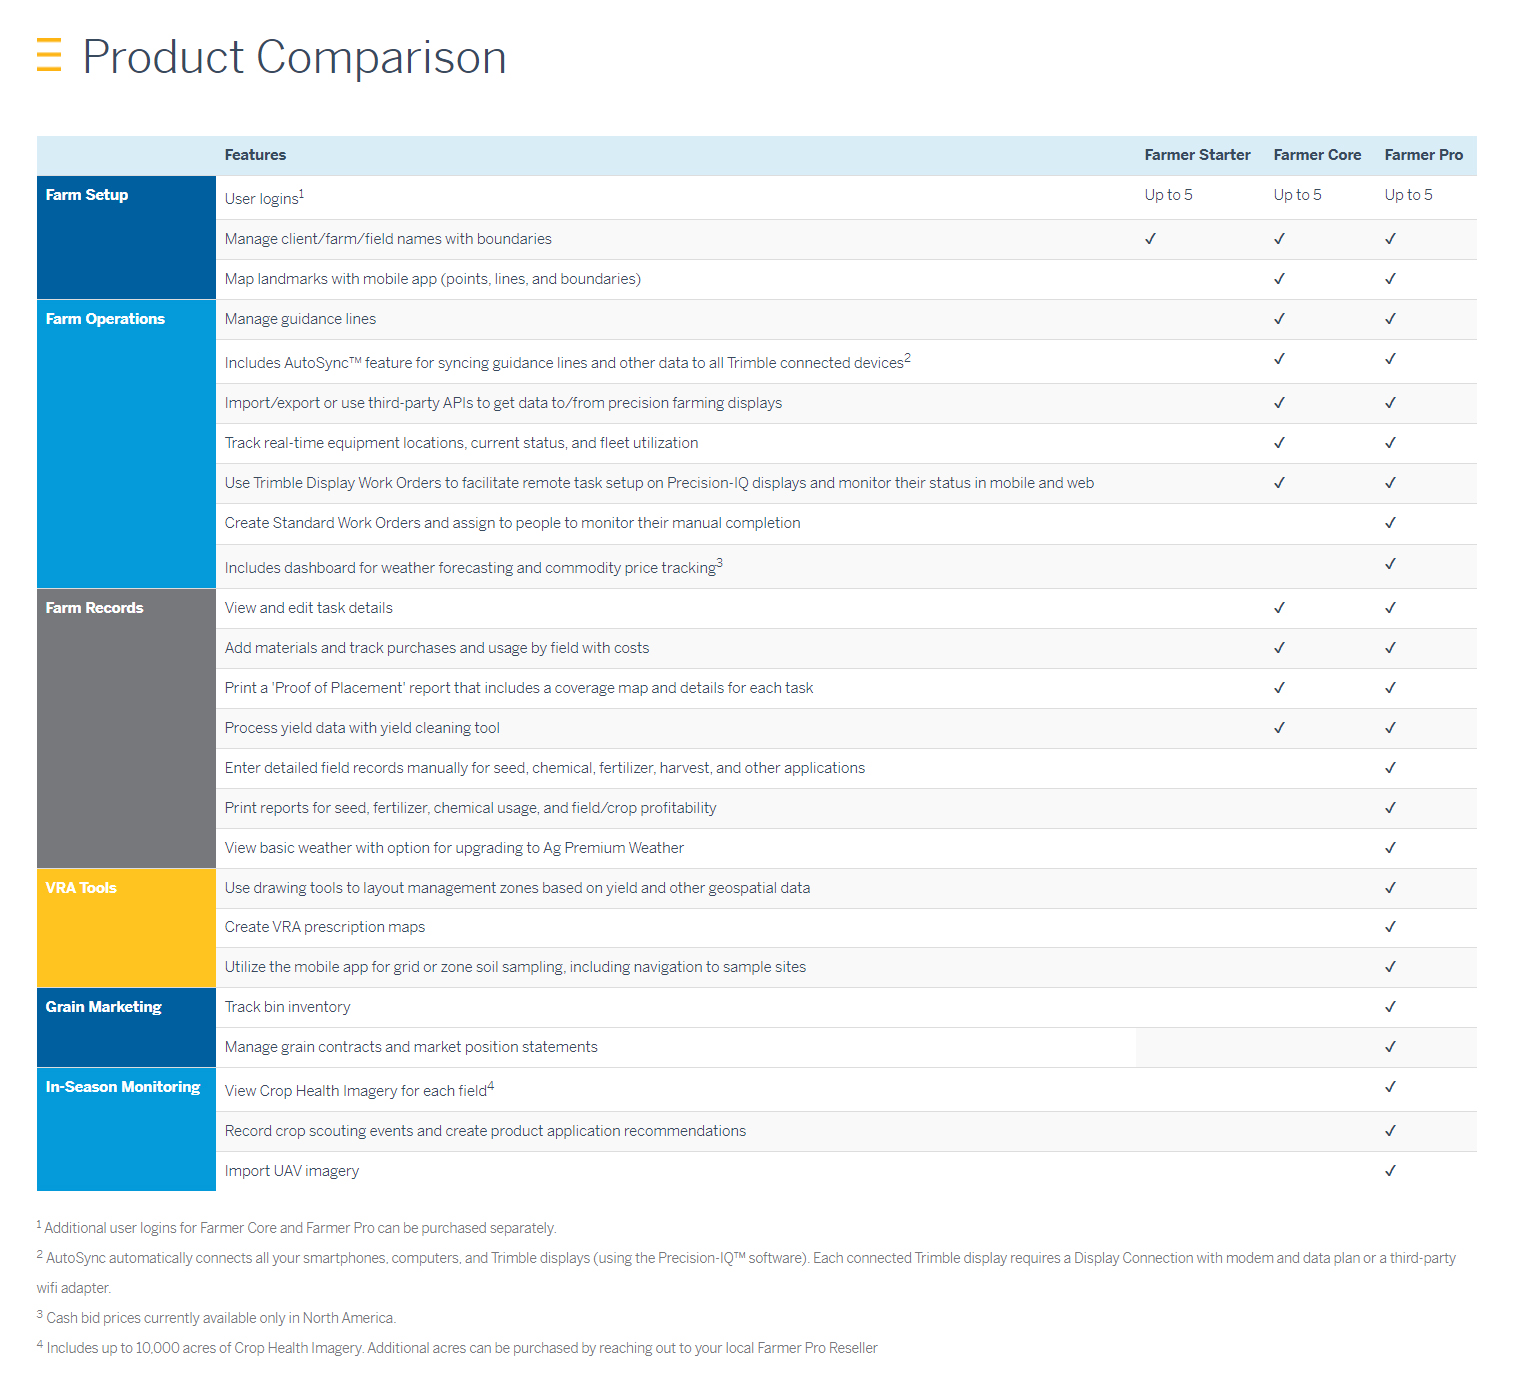 sw-product-comp-chart